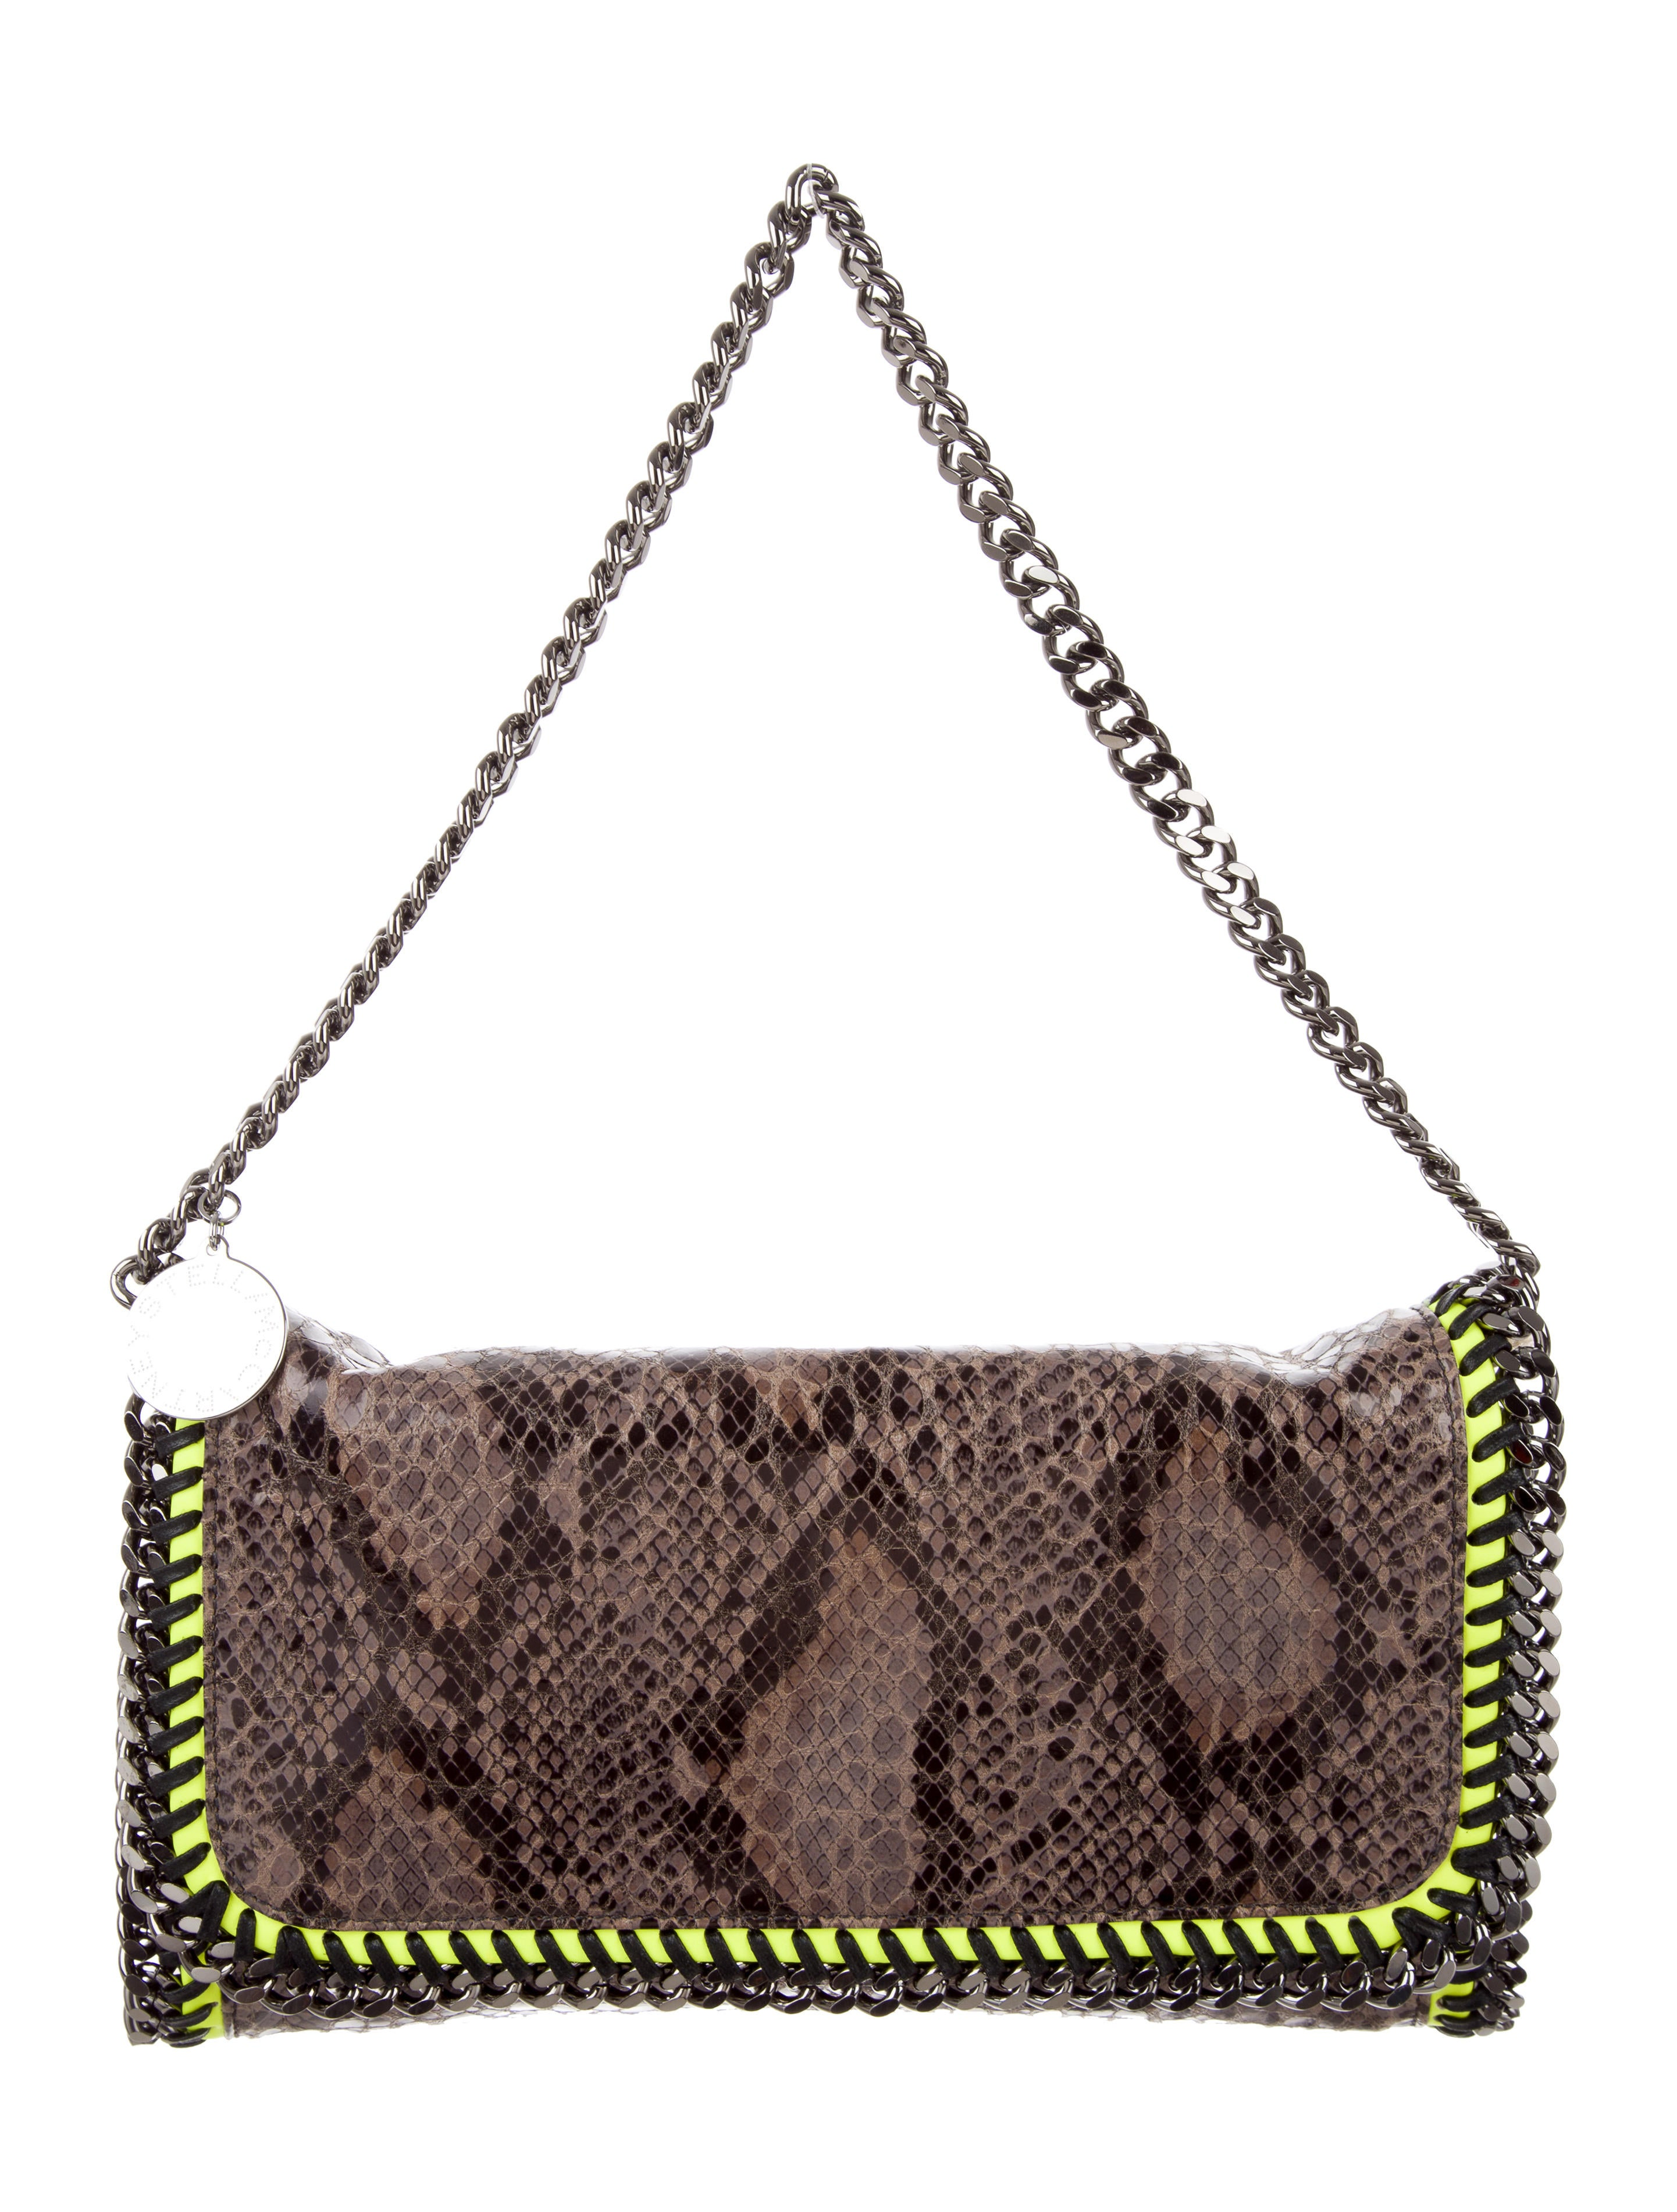 stella mccartney falabella flap bag w tags handbags stl58027 the realreal. Black Bedroom Furniture Sets. Home Design Ideas